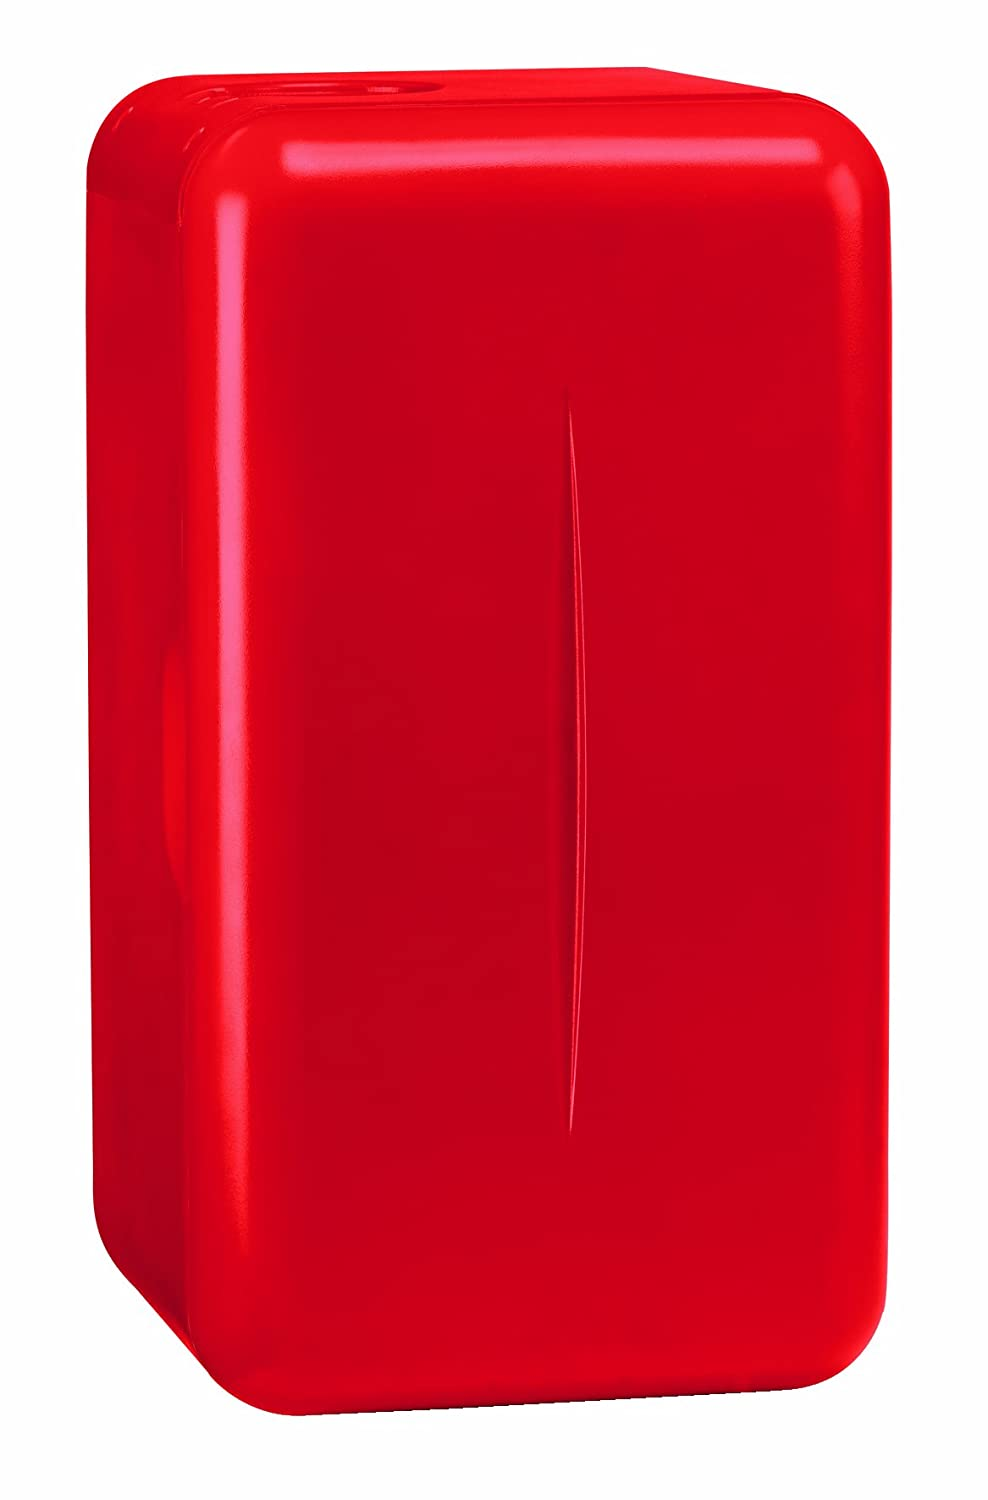 Mobicool F16 AC Mini Fridge, 15 Litre, Red Dometic 9105302766 9105302766_ROSSO